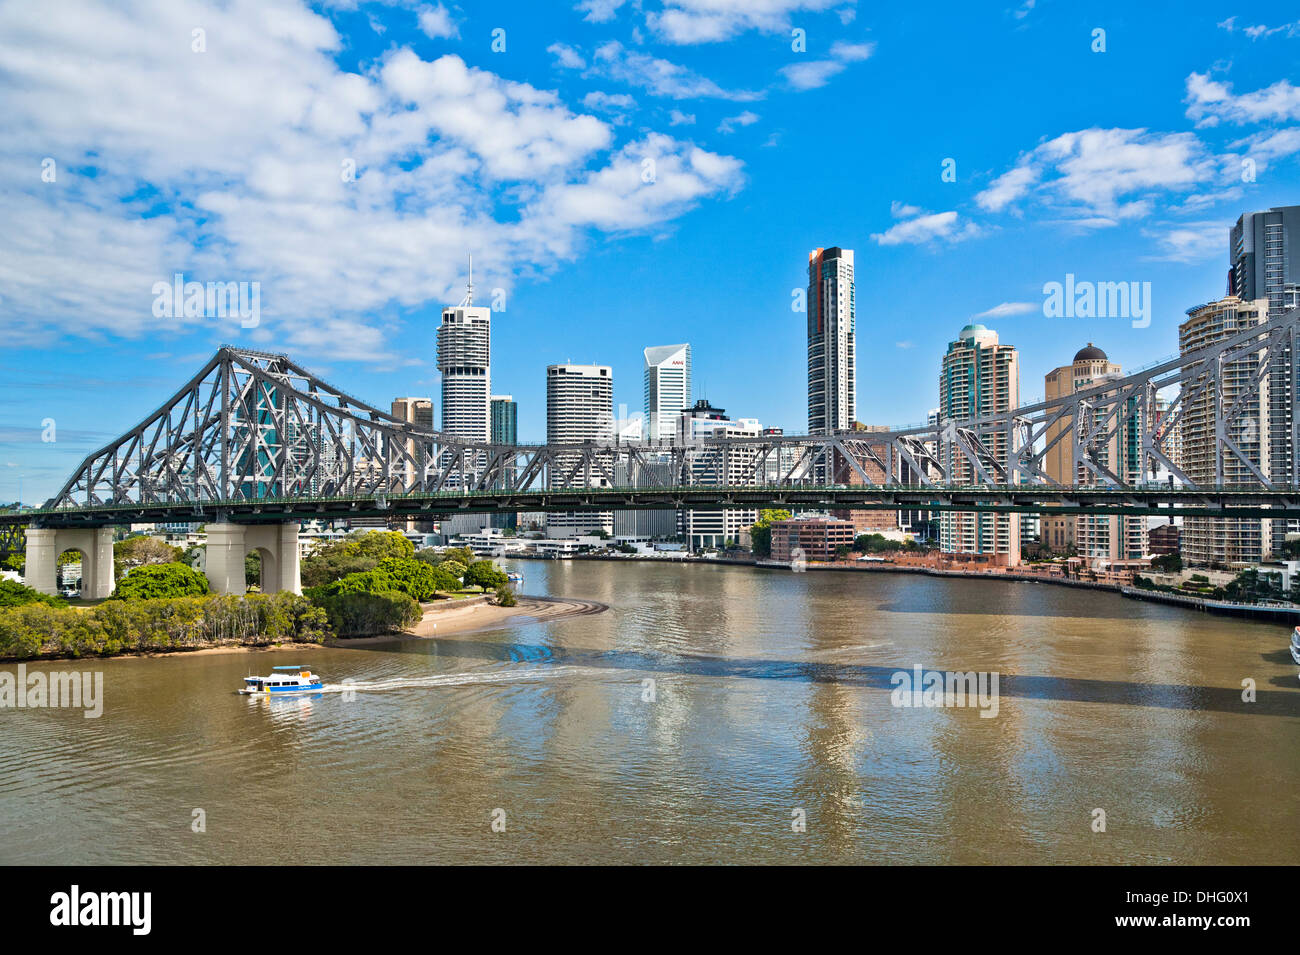 Australia, Queensland, Brisbane, view of Story Bridge and the city skyline with Brisbane River - Stock Image